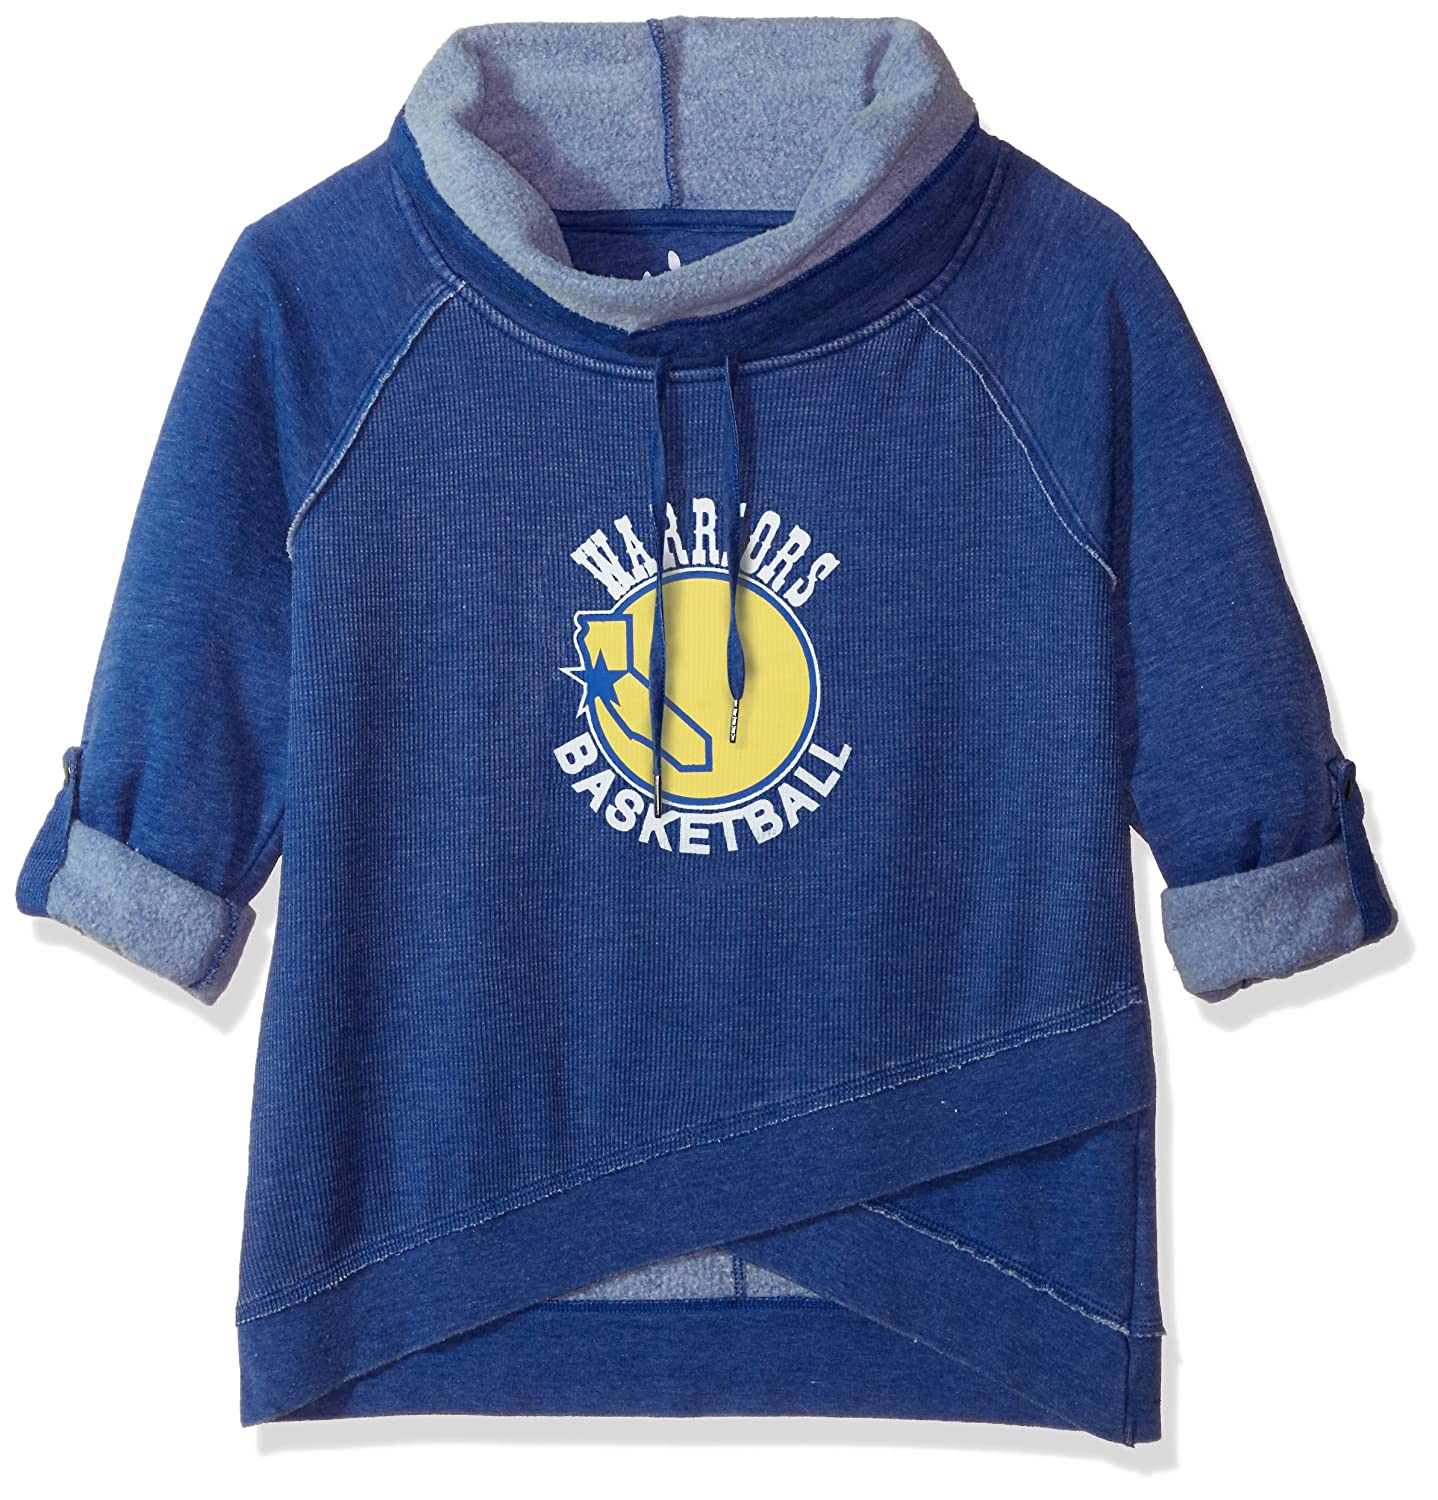 Touch by Alyssa Milano Women's Hardwood Classic Wildcard Top Royal, XLarge